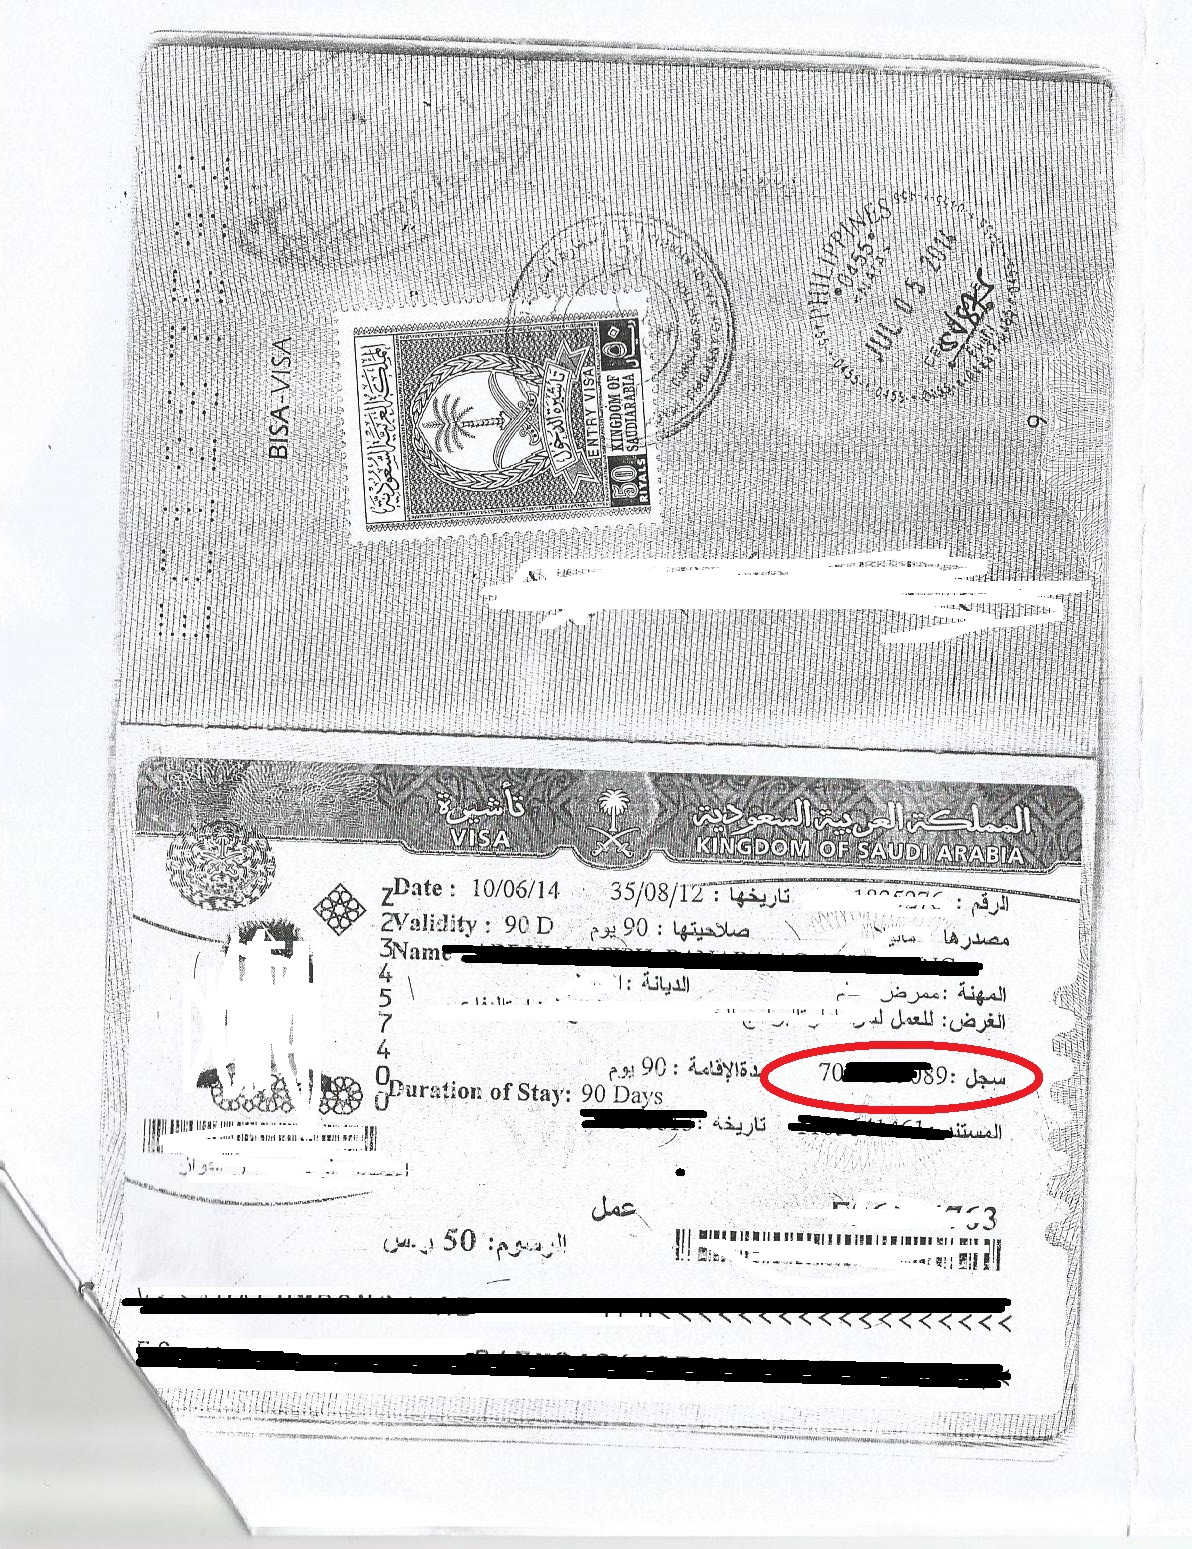 Note you should bring with you a photocopy of your visa which is printed in your passport because you need the visa sajl number during medical exam